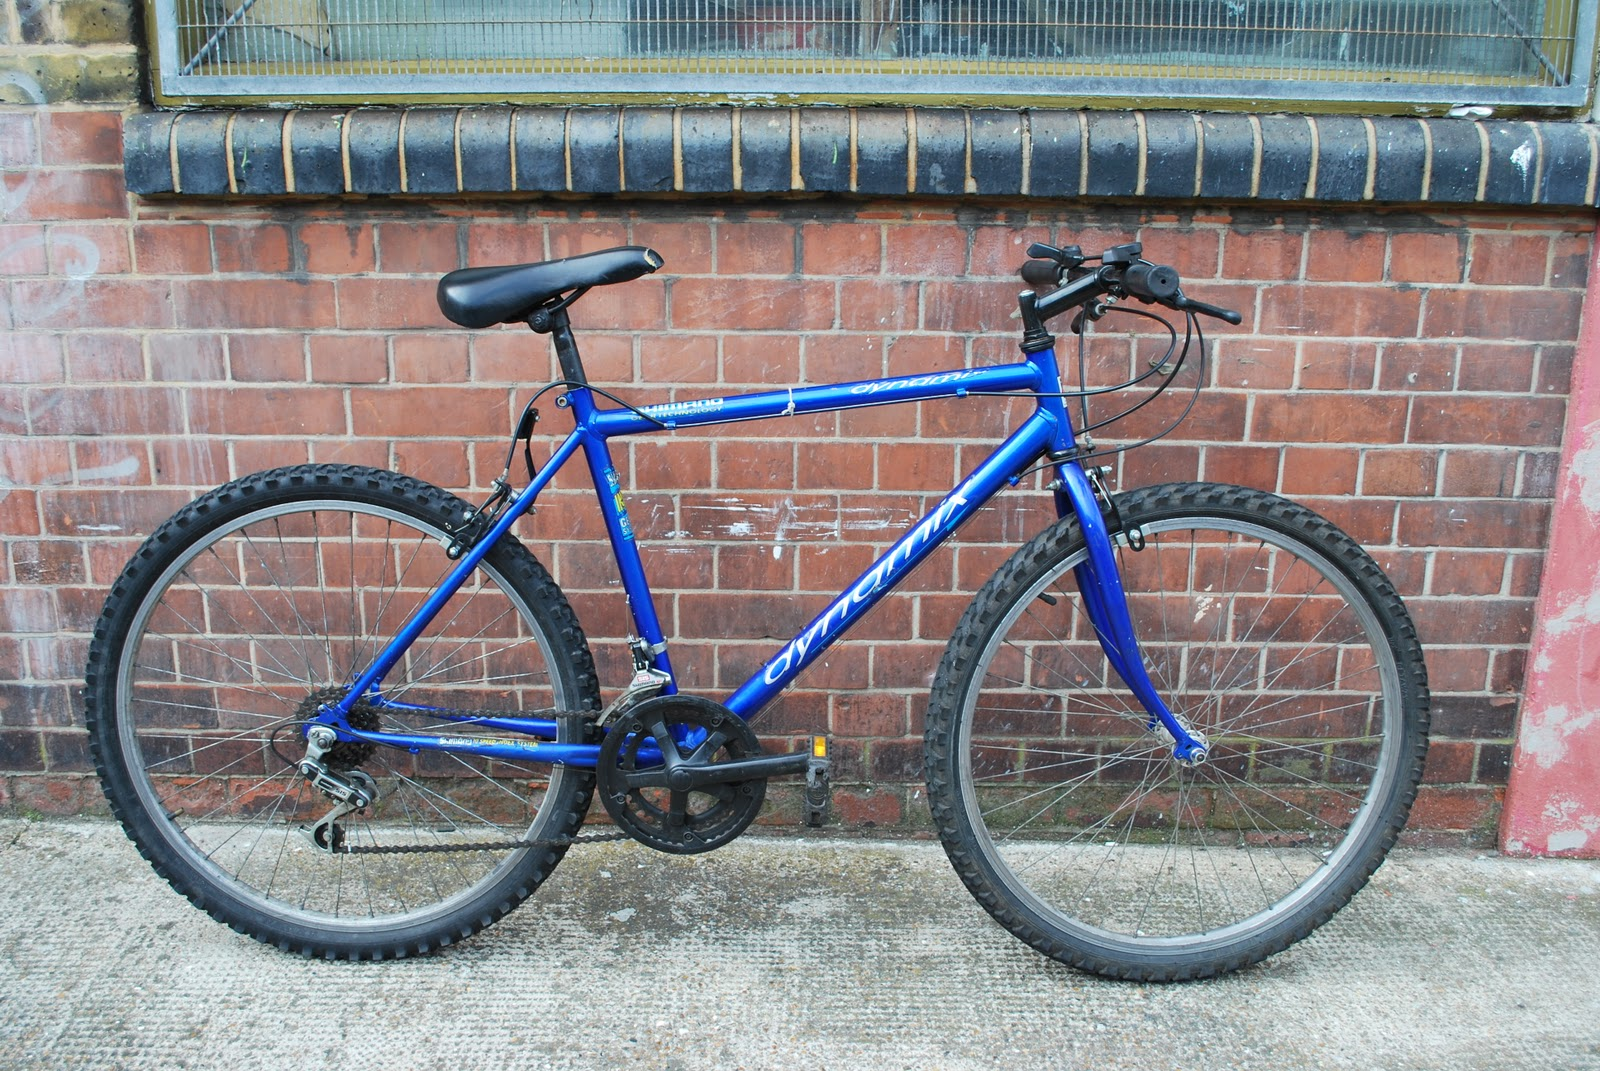 Squeaky Chains Ebay Sale Blue Shimano Dynamix Mountain Bike Sold